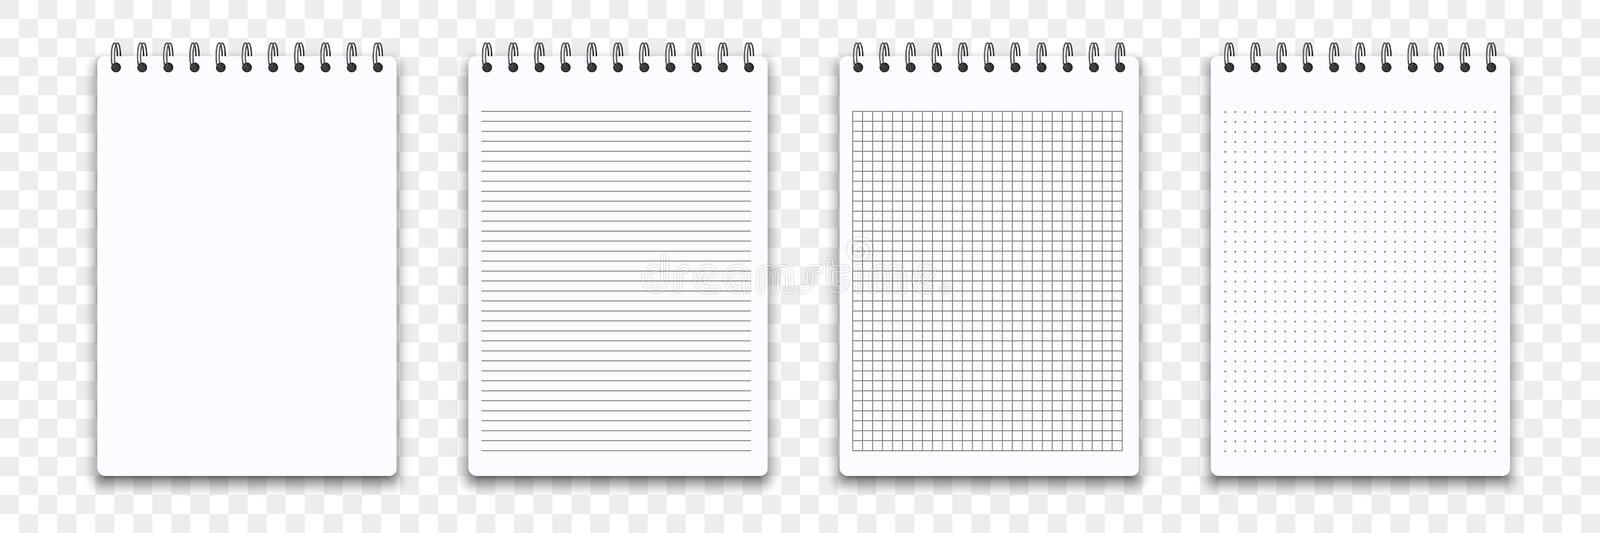 Notebook memo notepad templates. Vector note pad or diary line and square paper page binder royalty free illustration